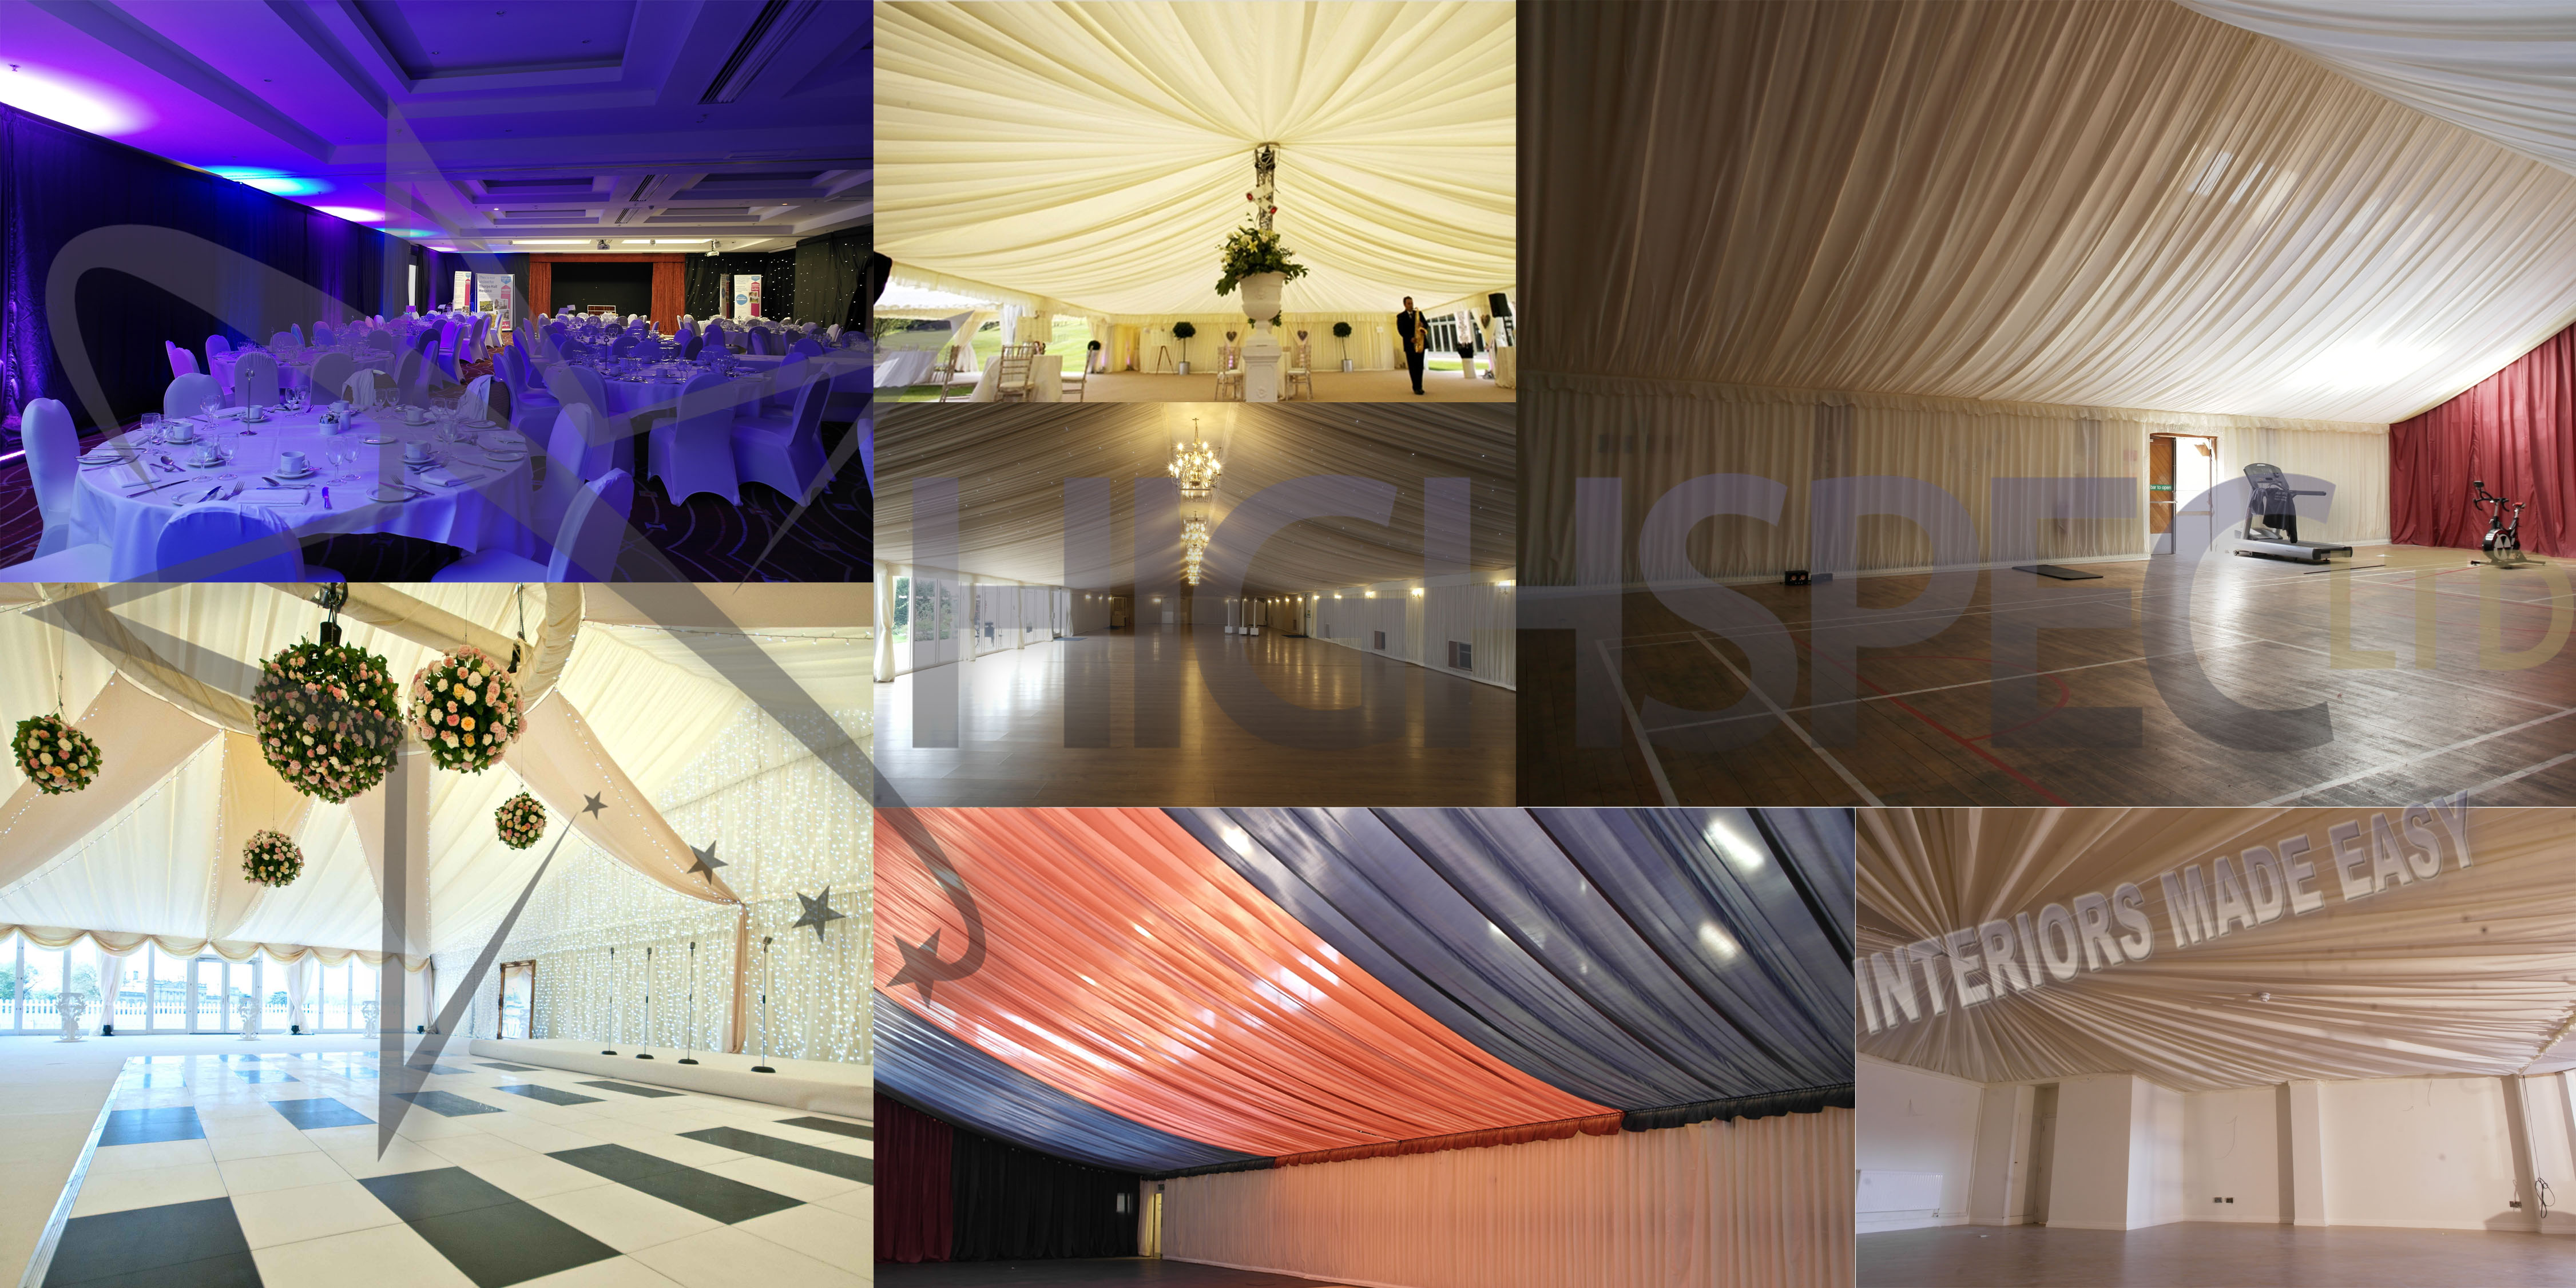 Event venue decor